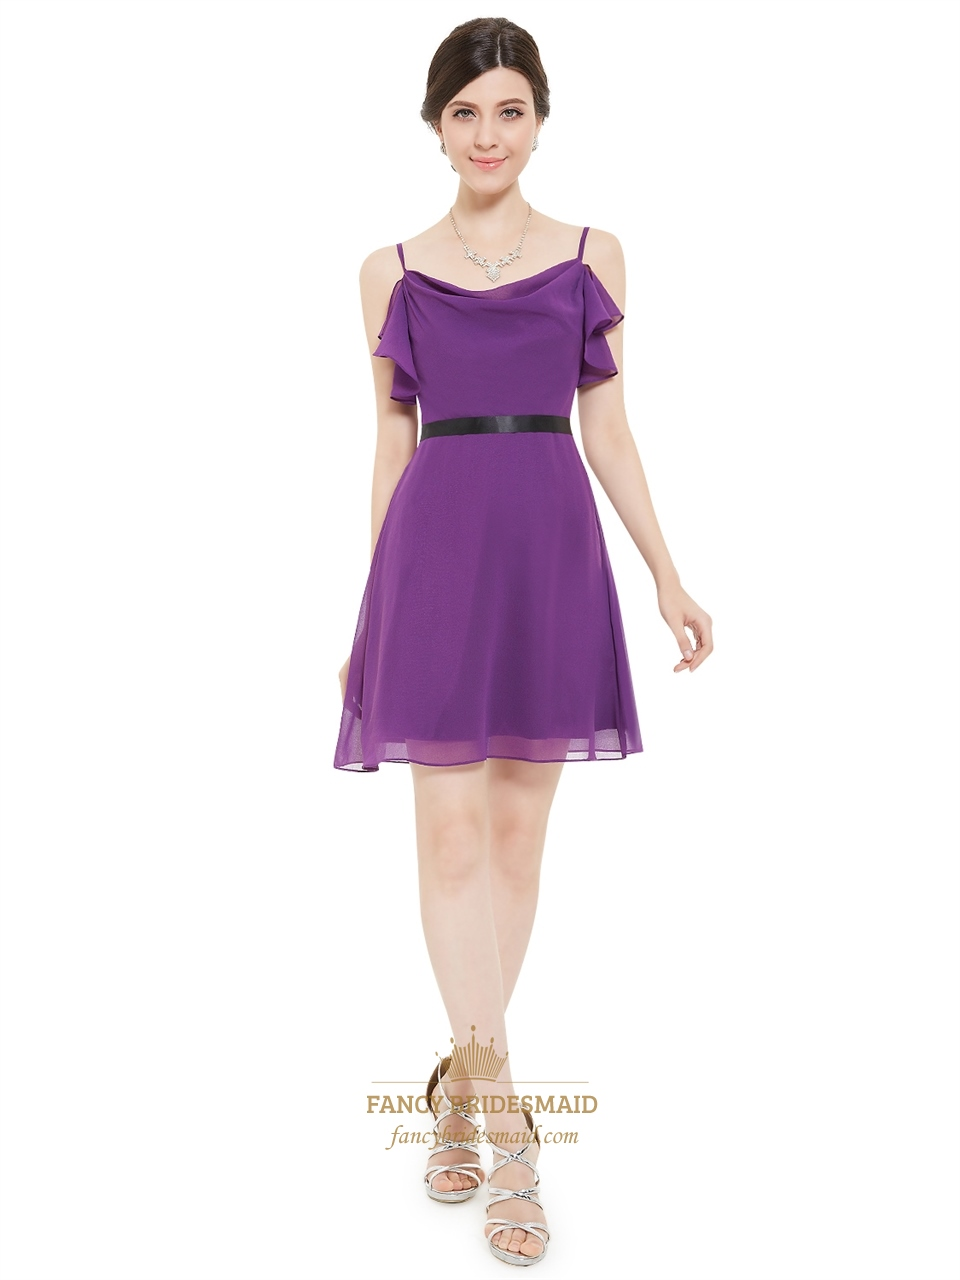 607e2cbcb51e Violet Chiffon A-Line Spaghetti Strap Chiffon Cocktail Dress With Black Belt  SKU -F618